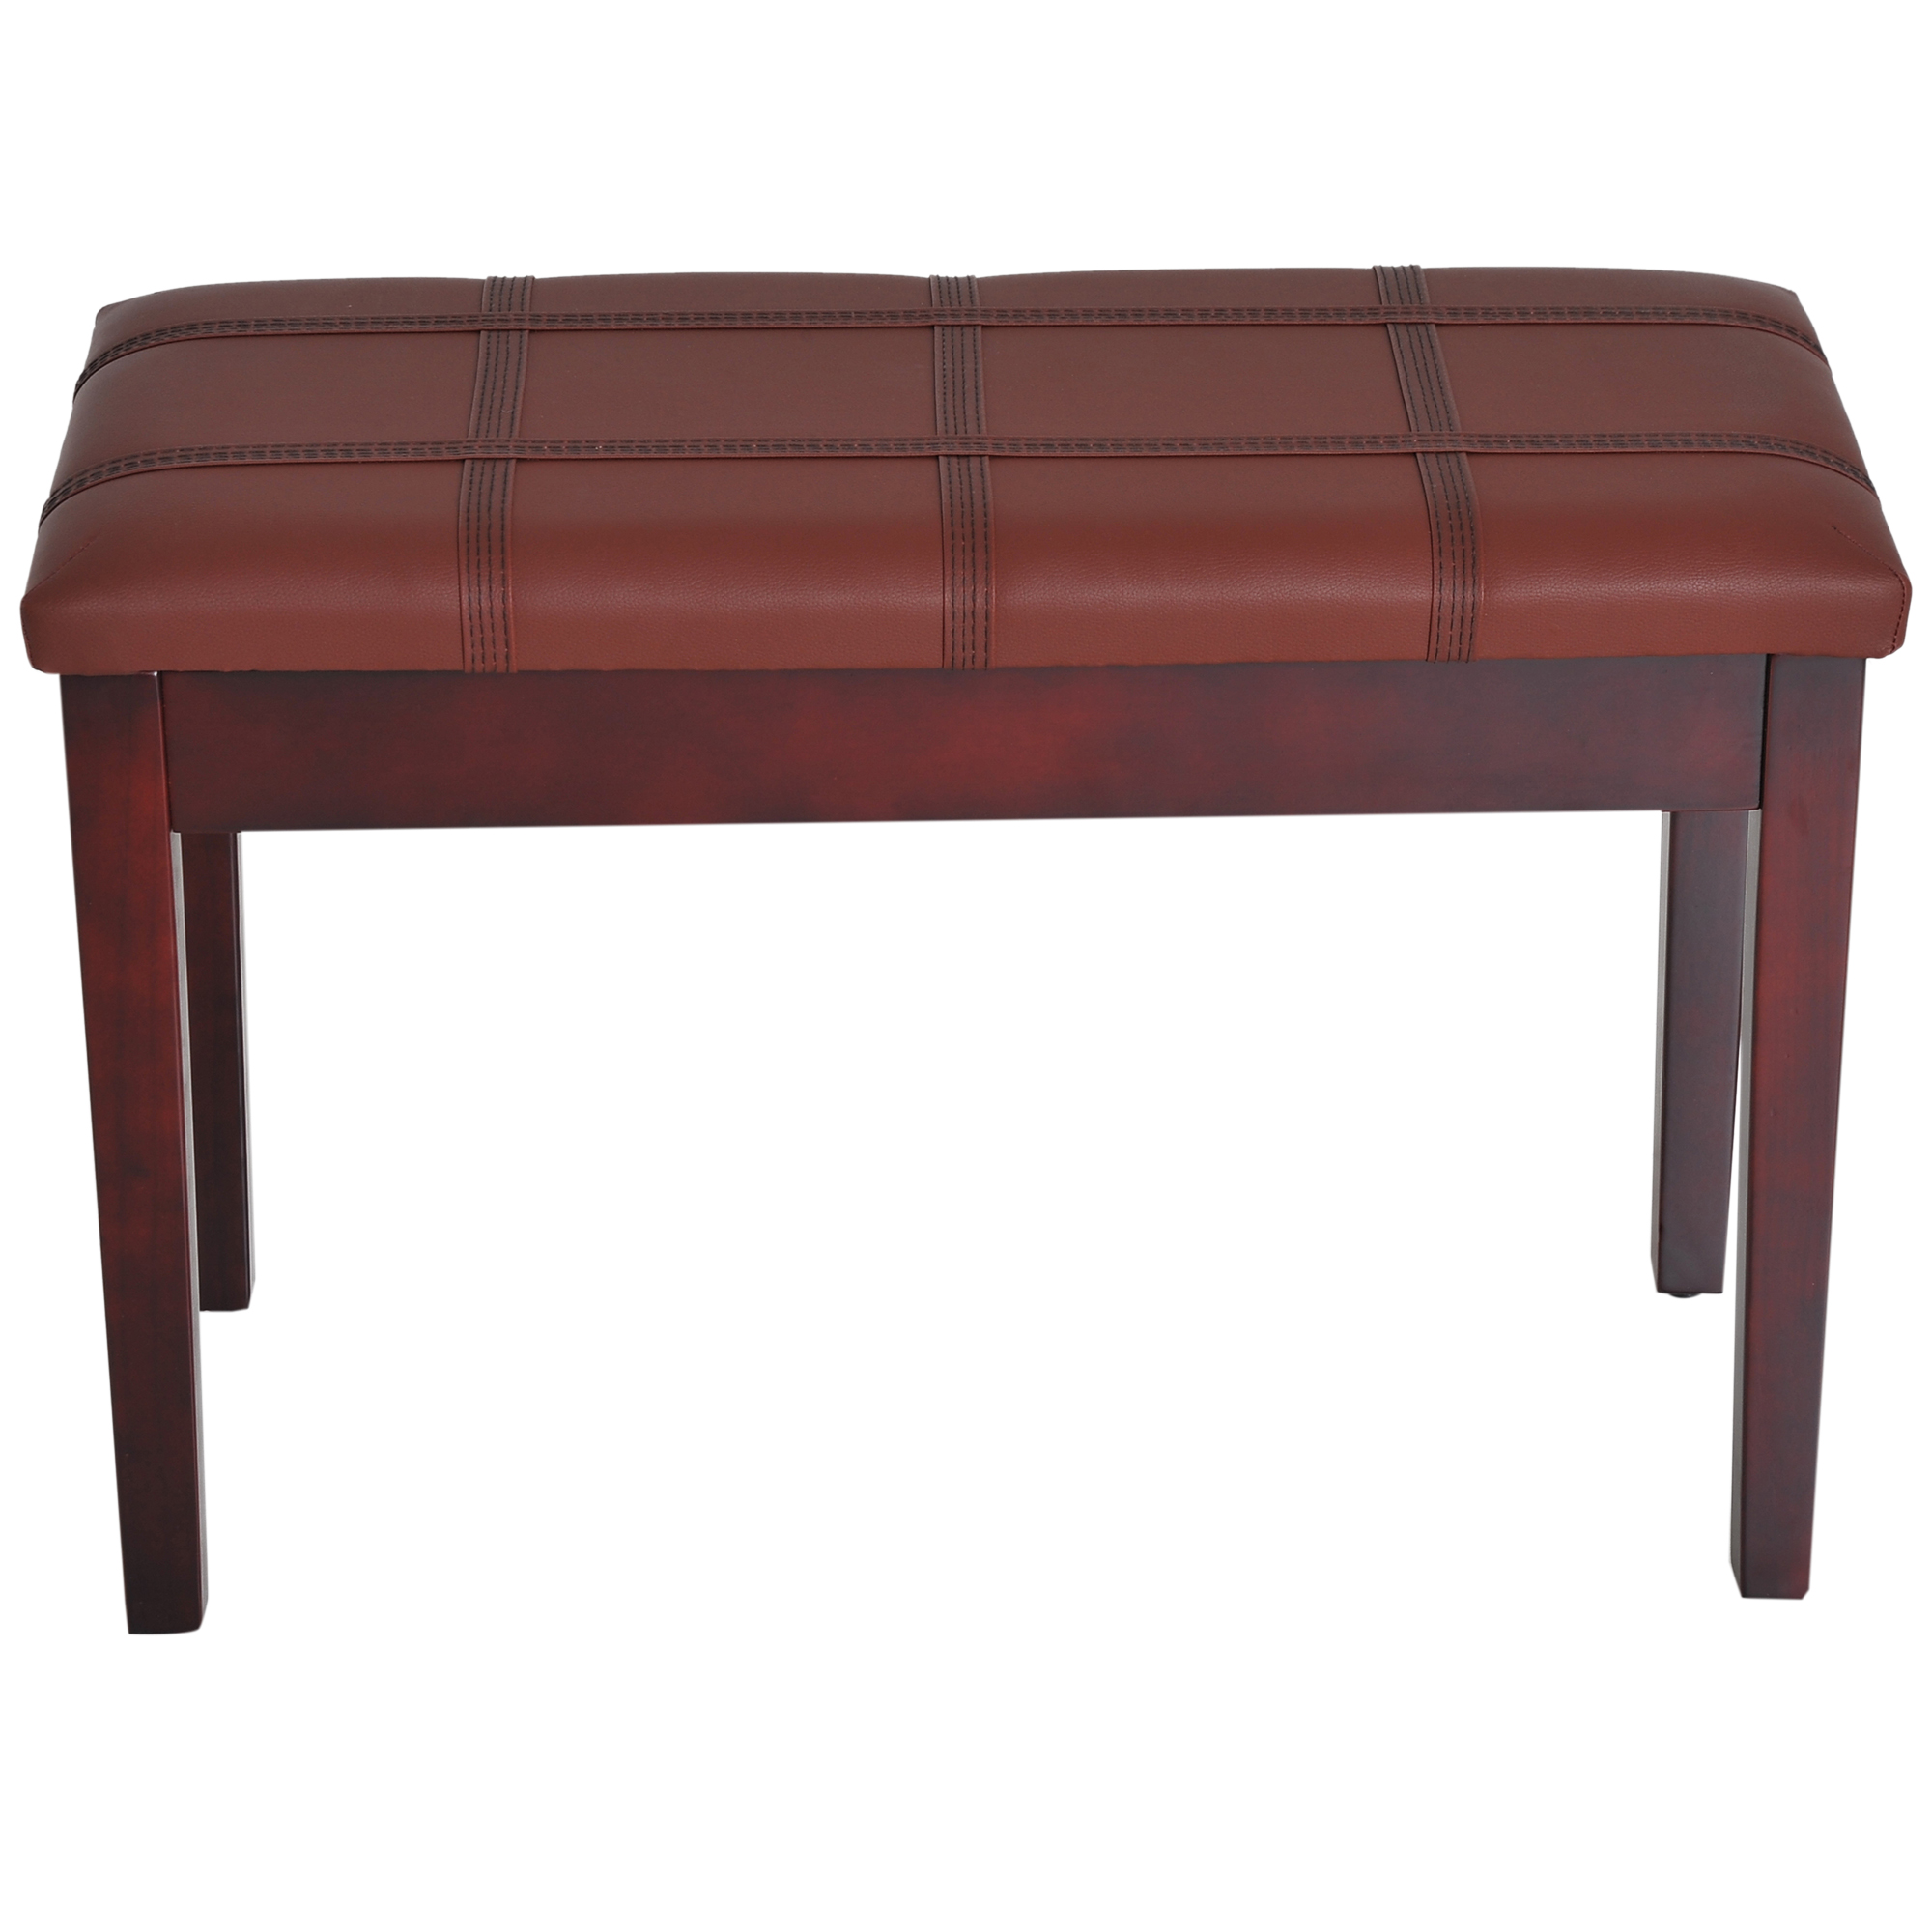 Two-Person-Lift-Top-Piano-Storage-Bench-Faux-Leather-Keyboard-Stool-Birchwood thumbnail 14